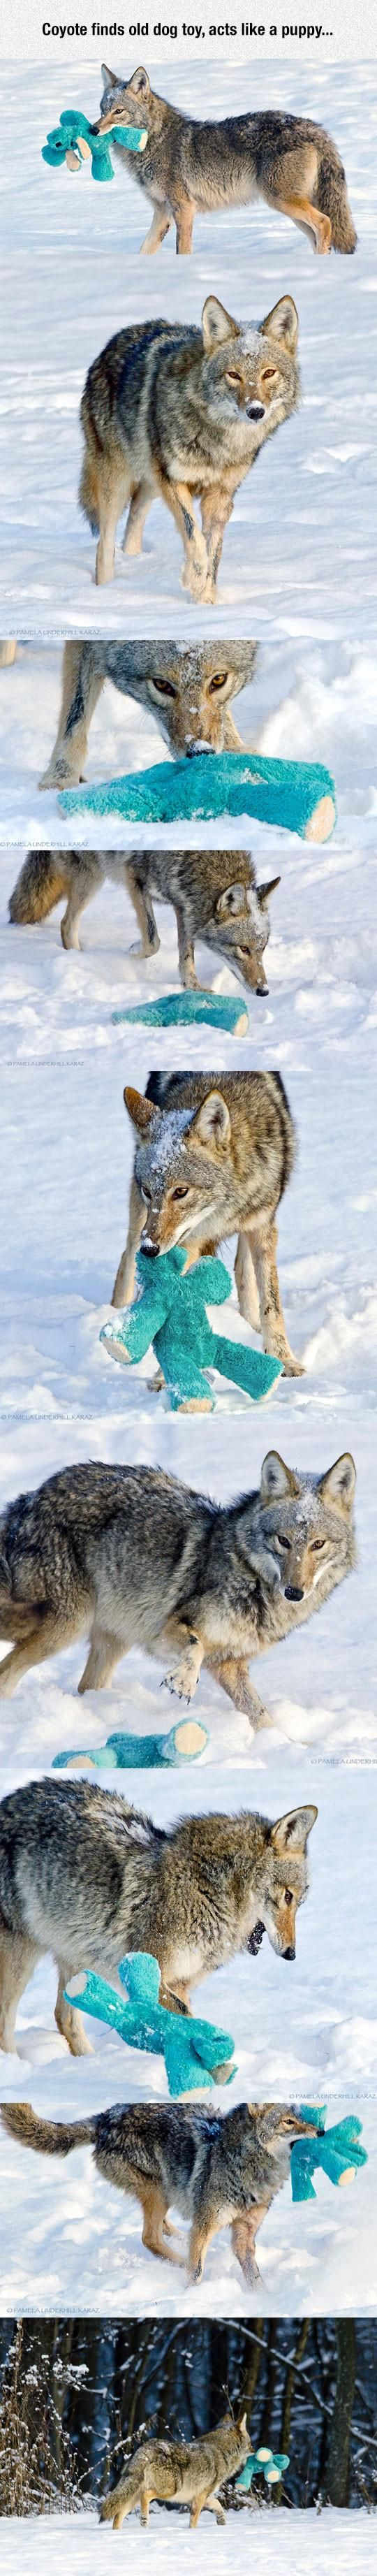 Coyote finds dog toy, becomes puppers again